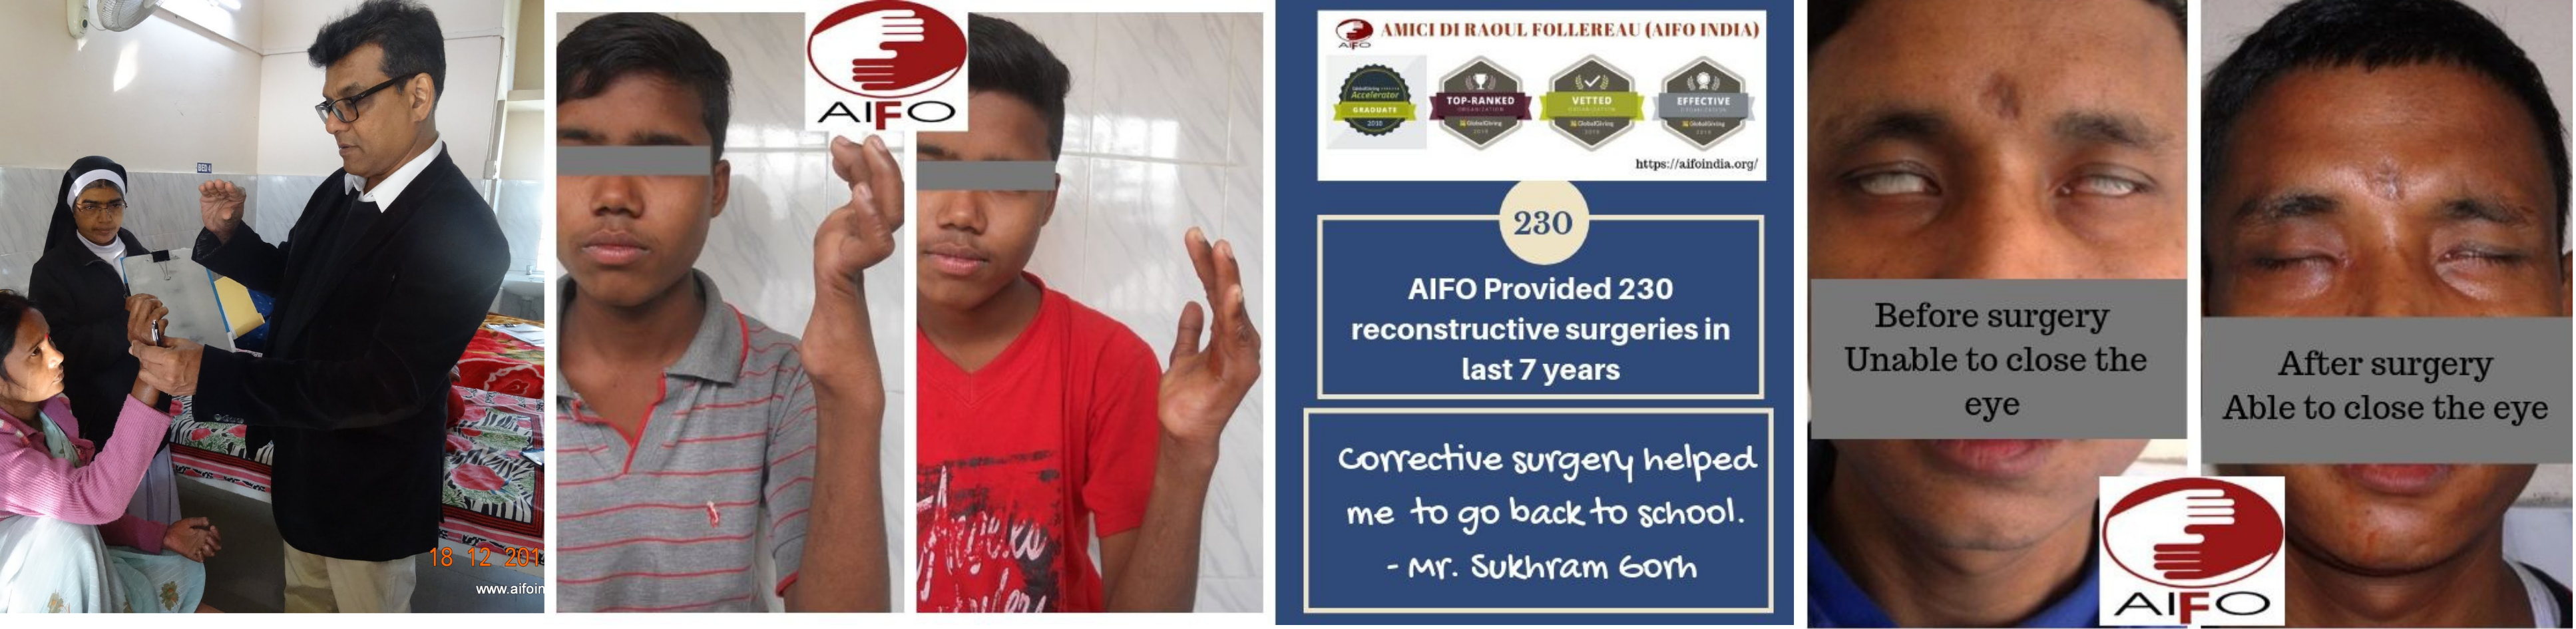 Support for corrective surgery and ulcer care for persons living with leprosy deformity